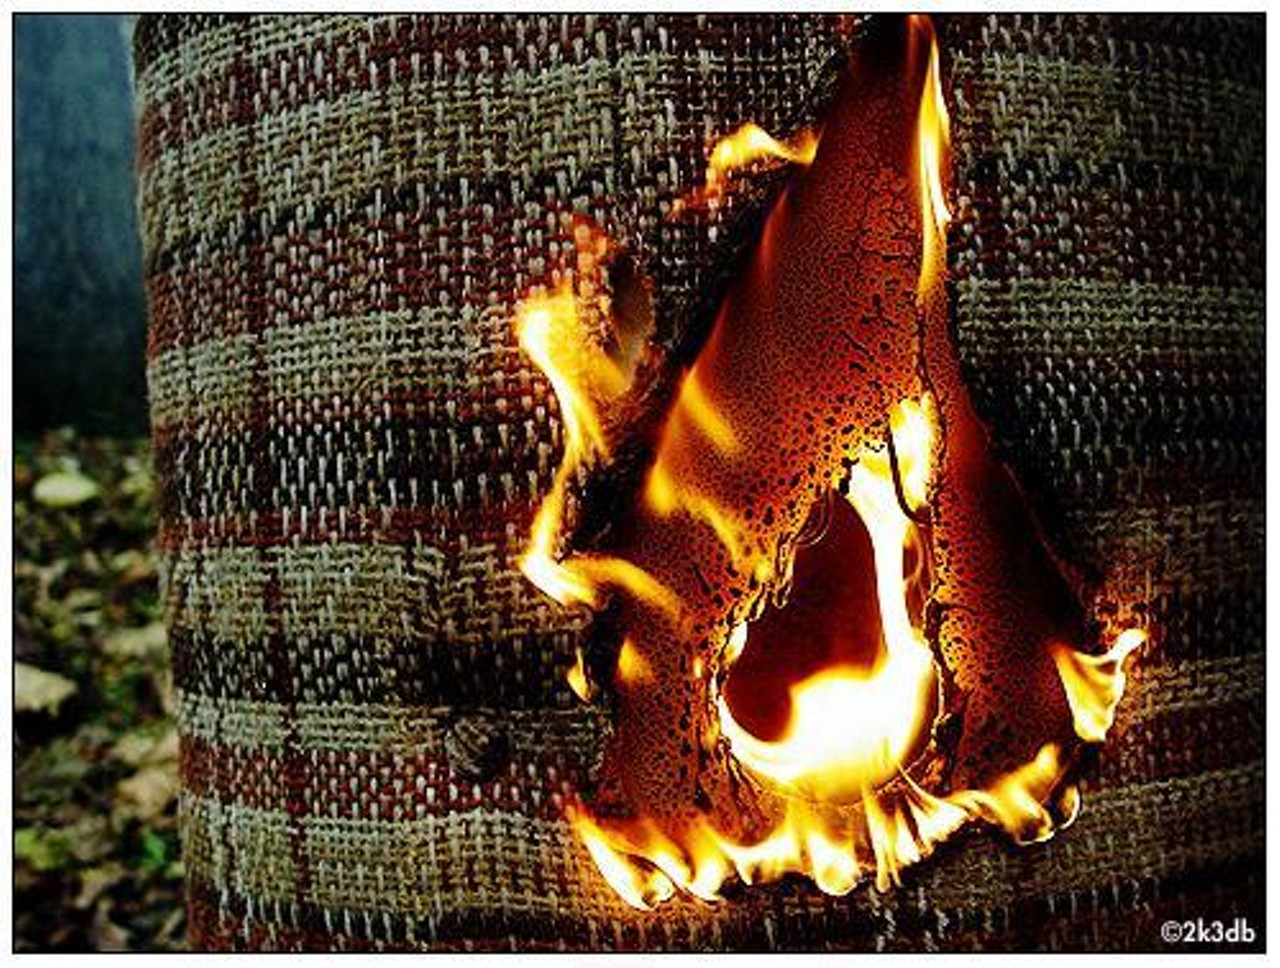 Burning Textile for Science March Blog Post